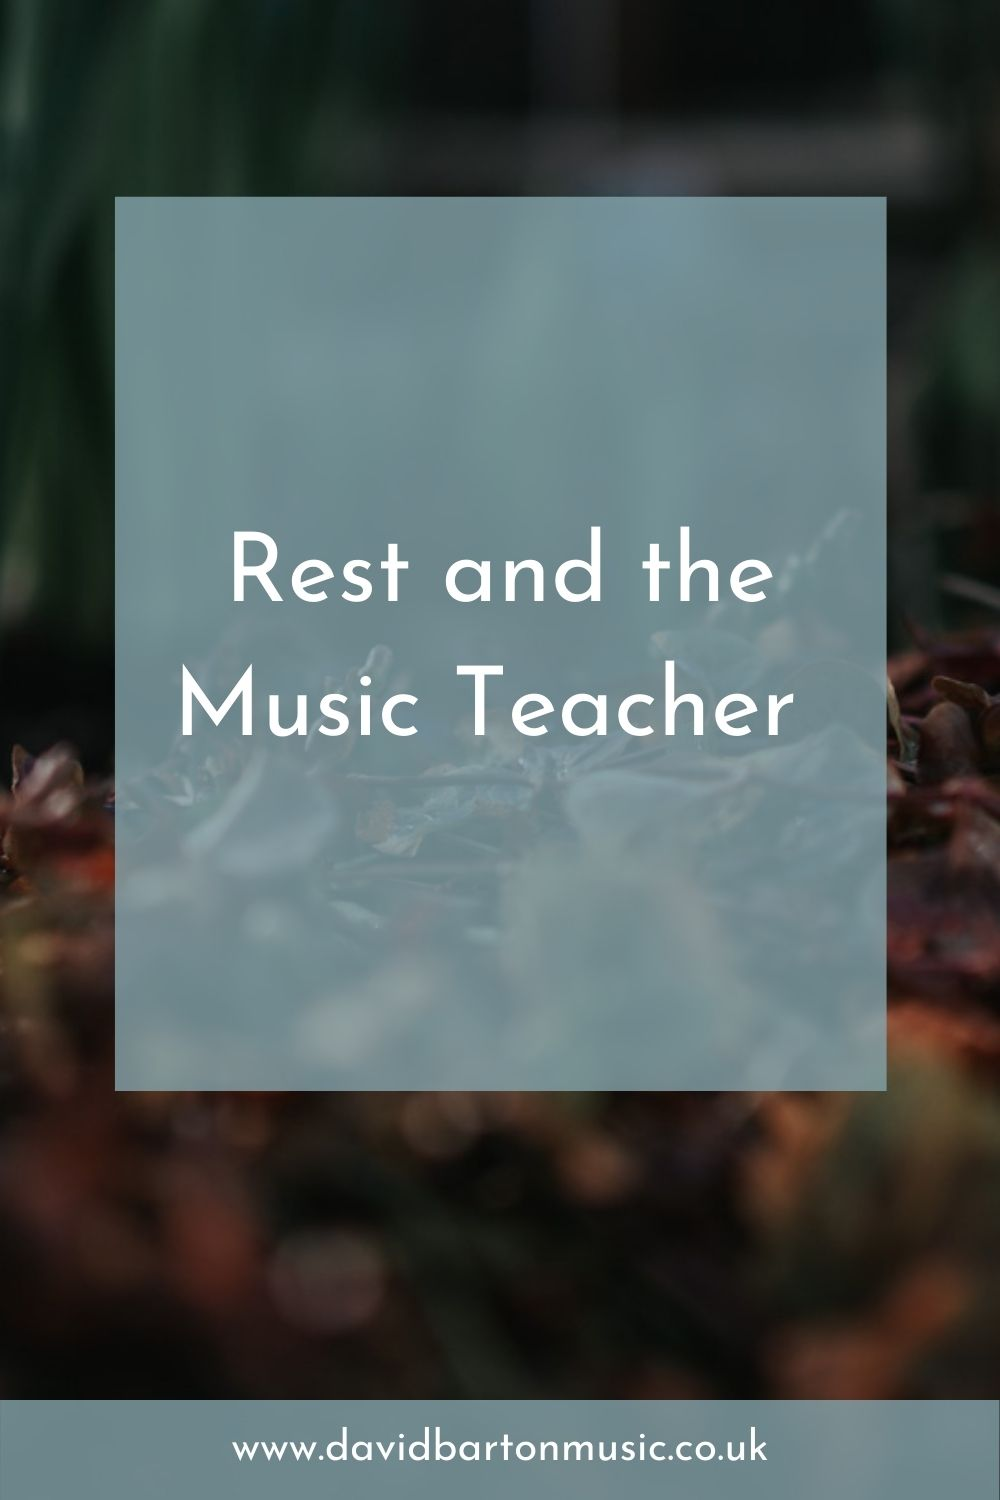 Rest and the Music Teacher - Pinterest Graphic